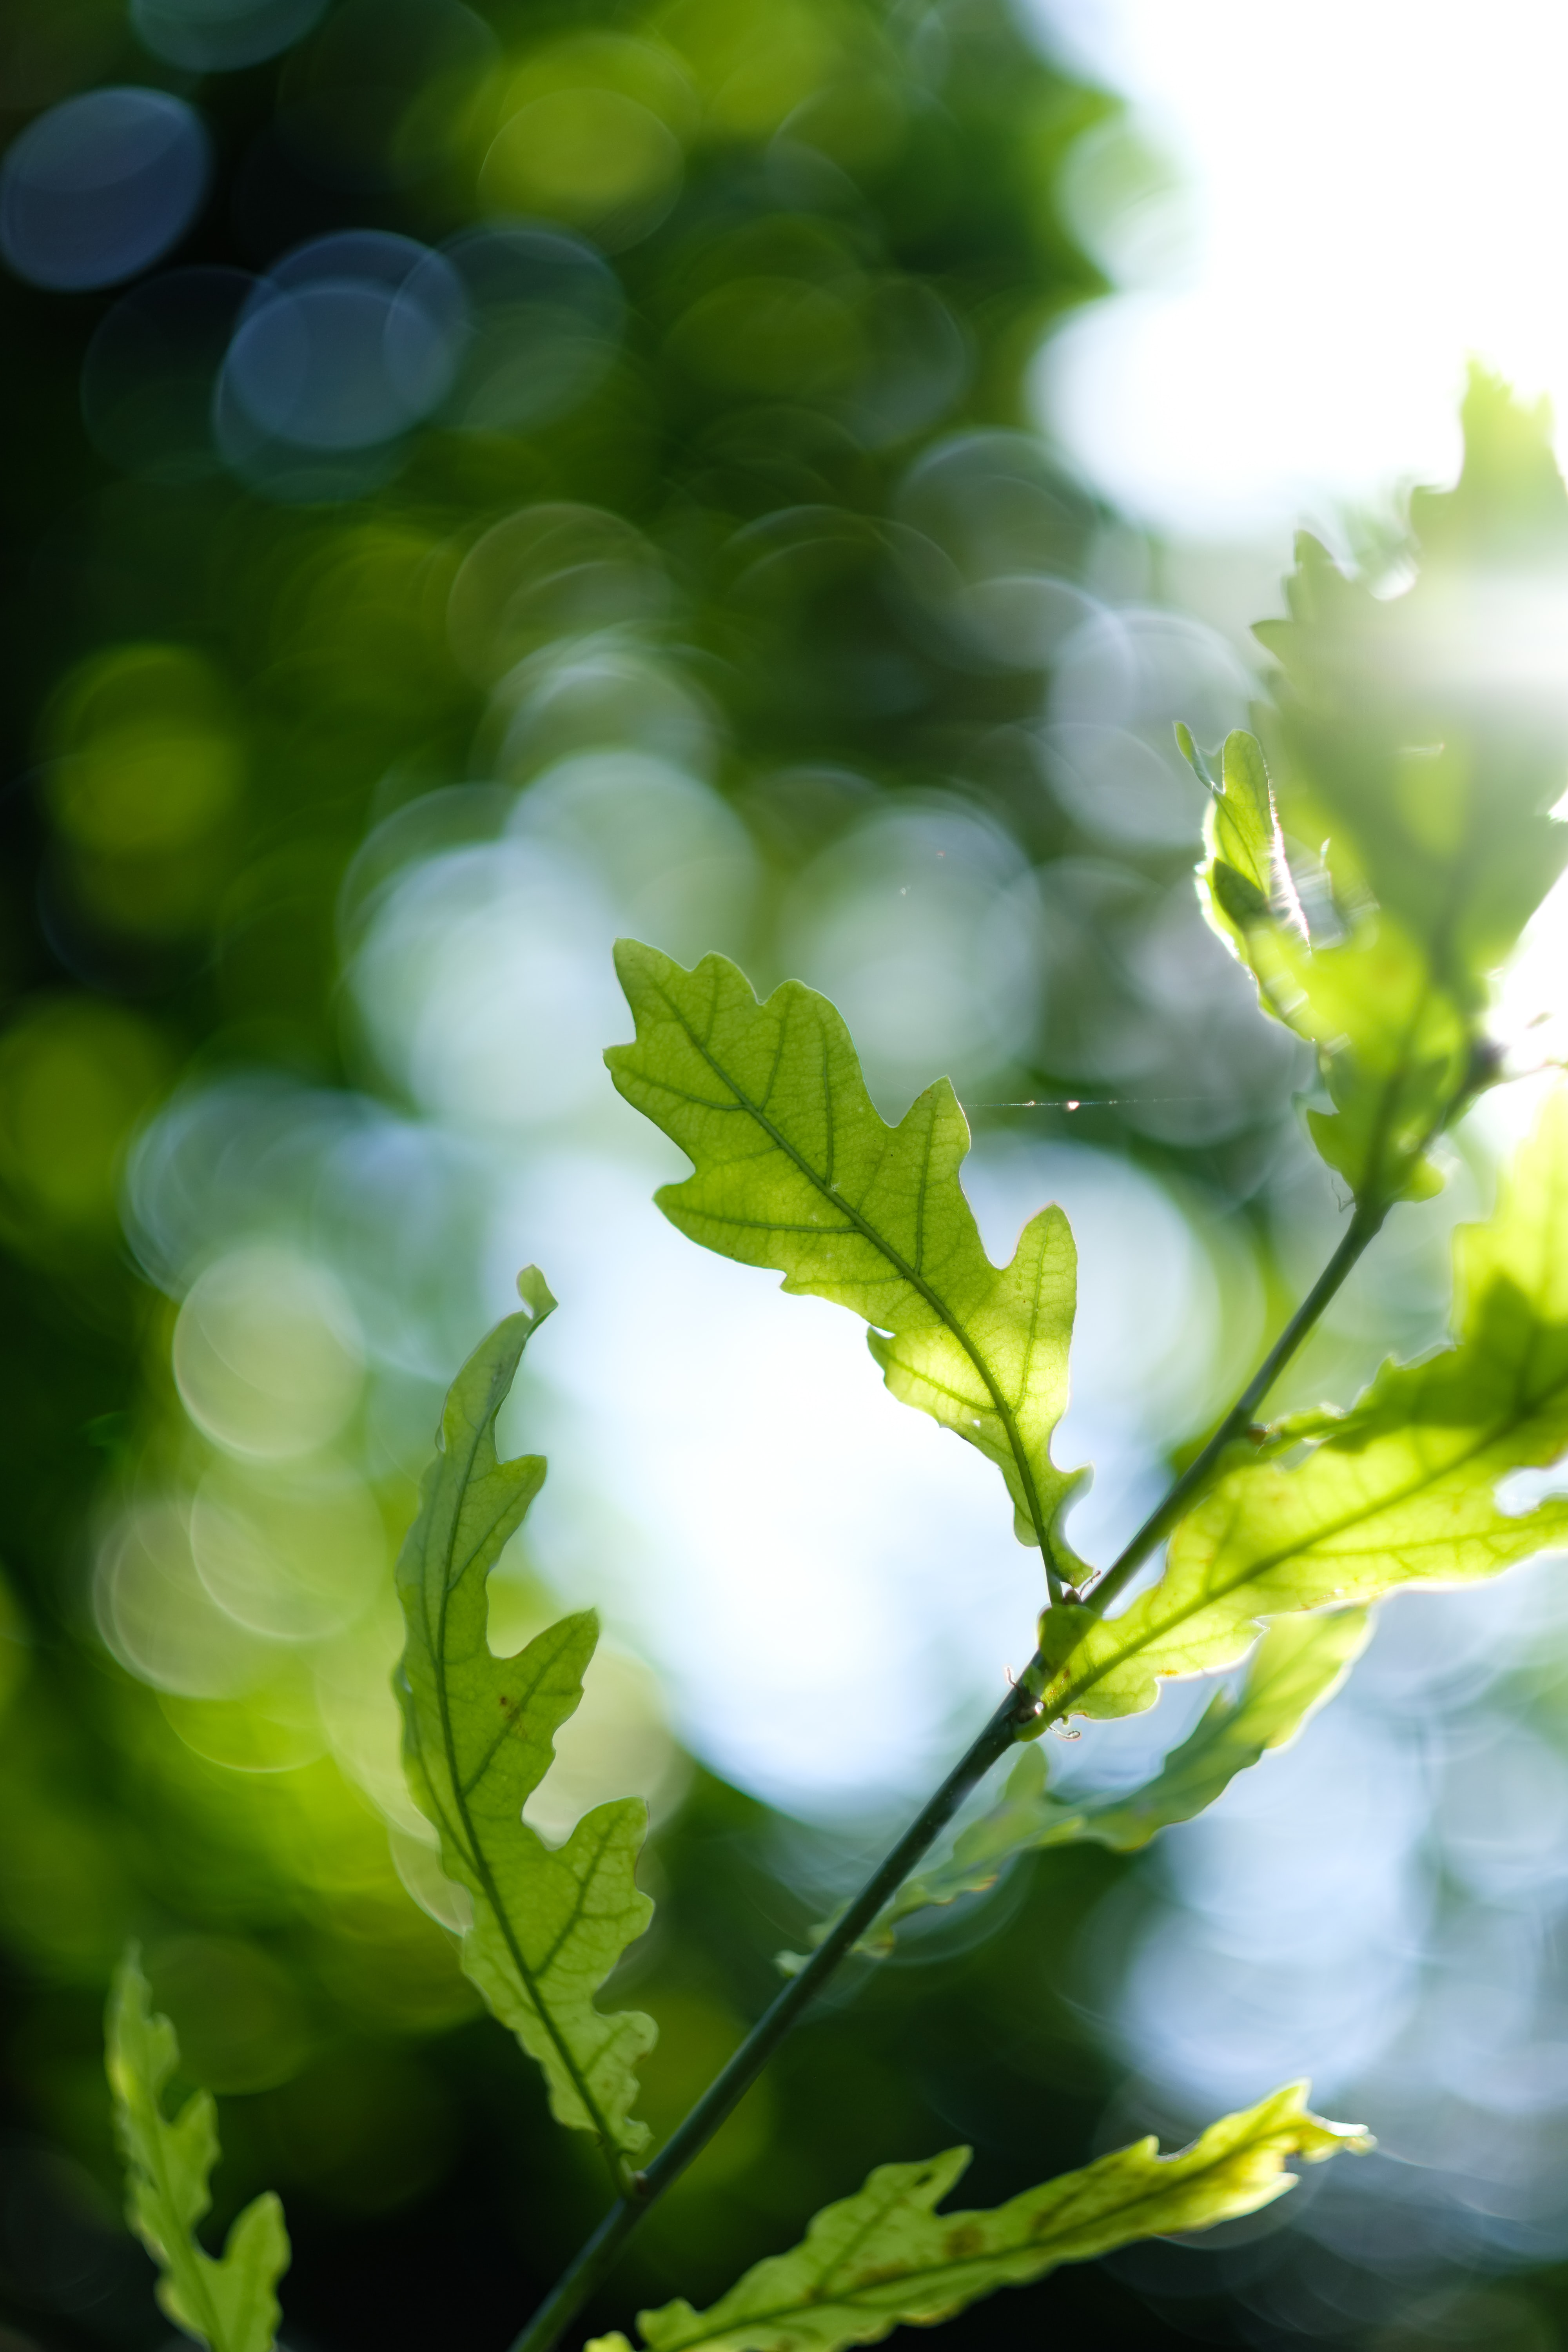 Leaves and branches bask in the sunlight